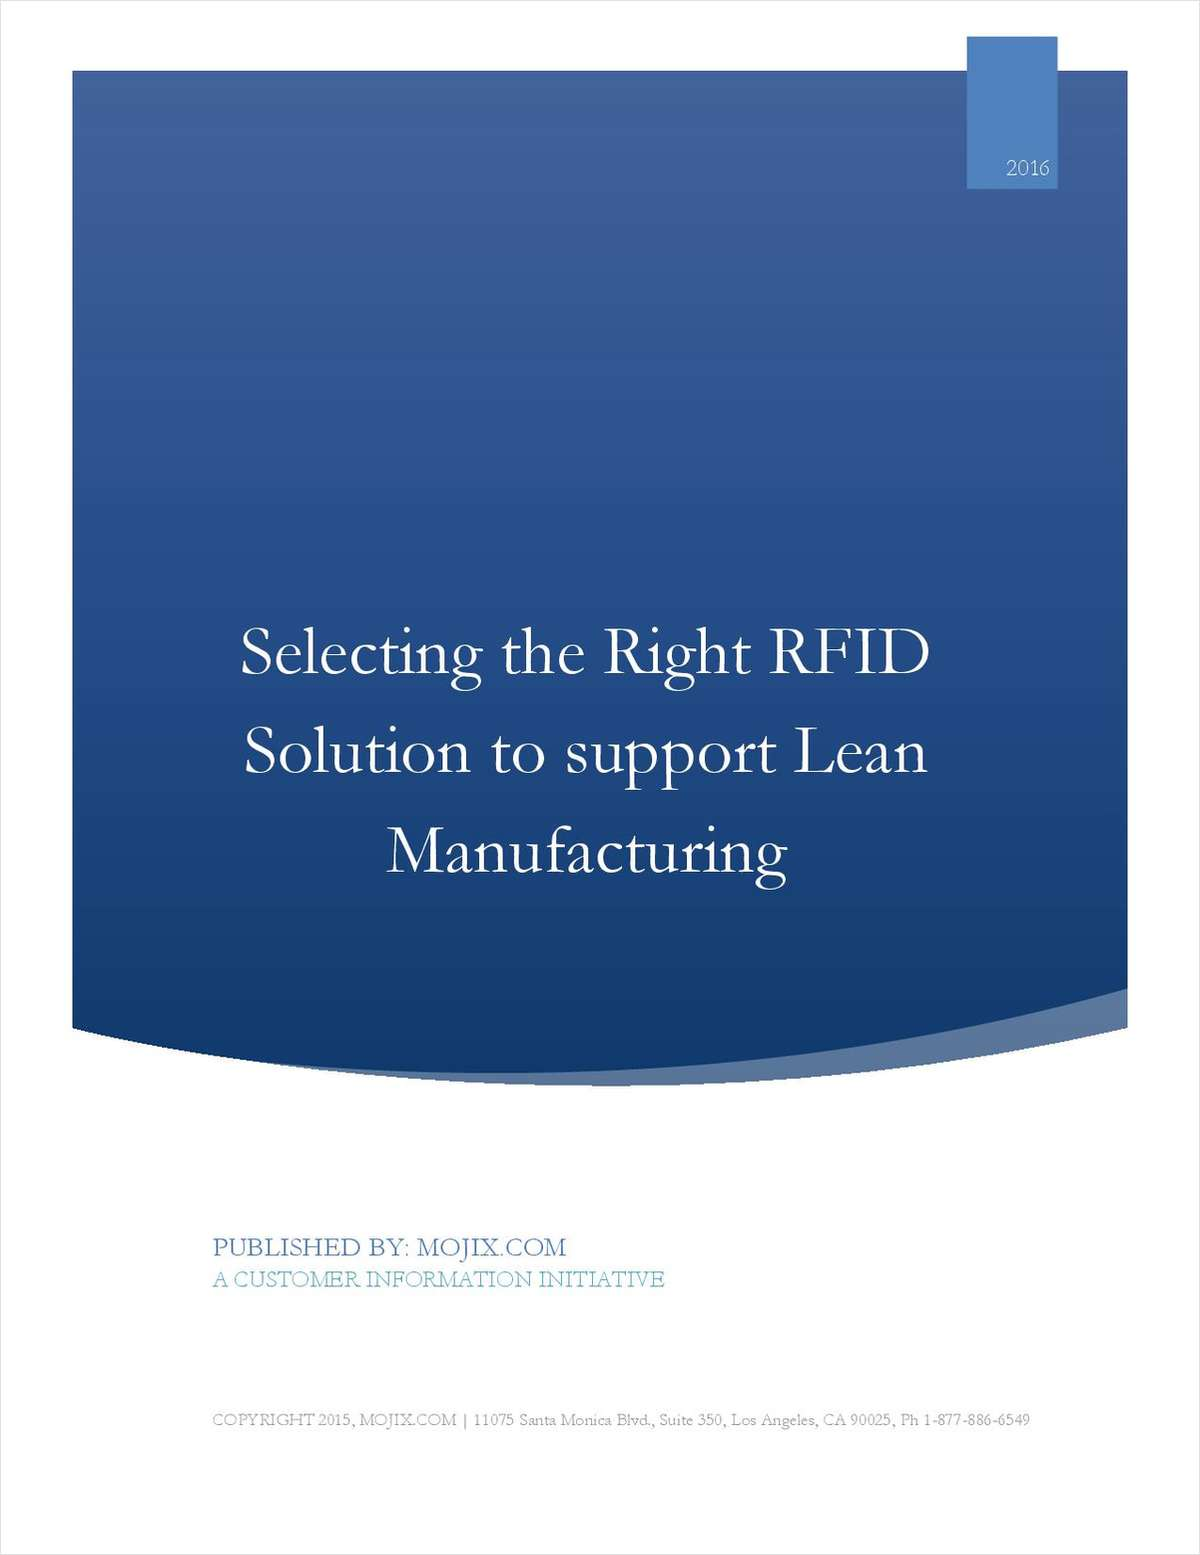 7 Minute Guide: Selecting the right RFID solution to support Lean Manufacturing